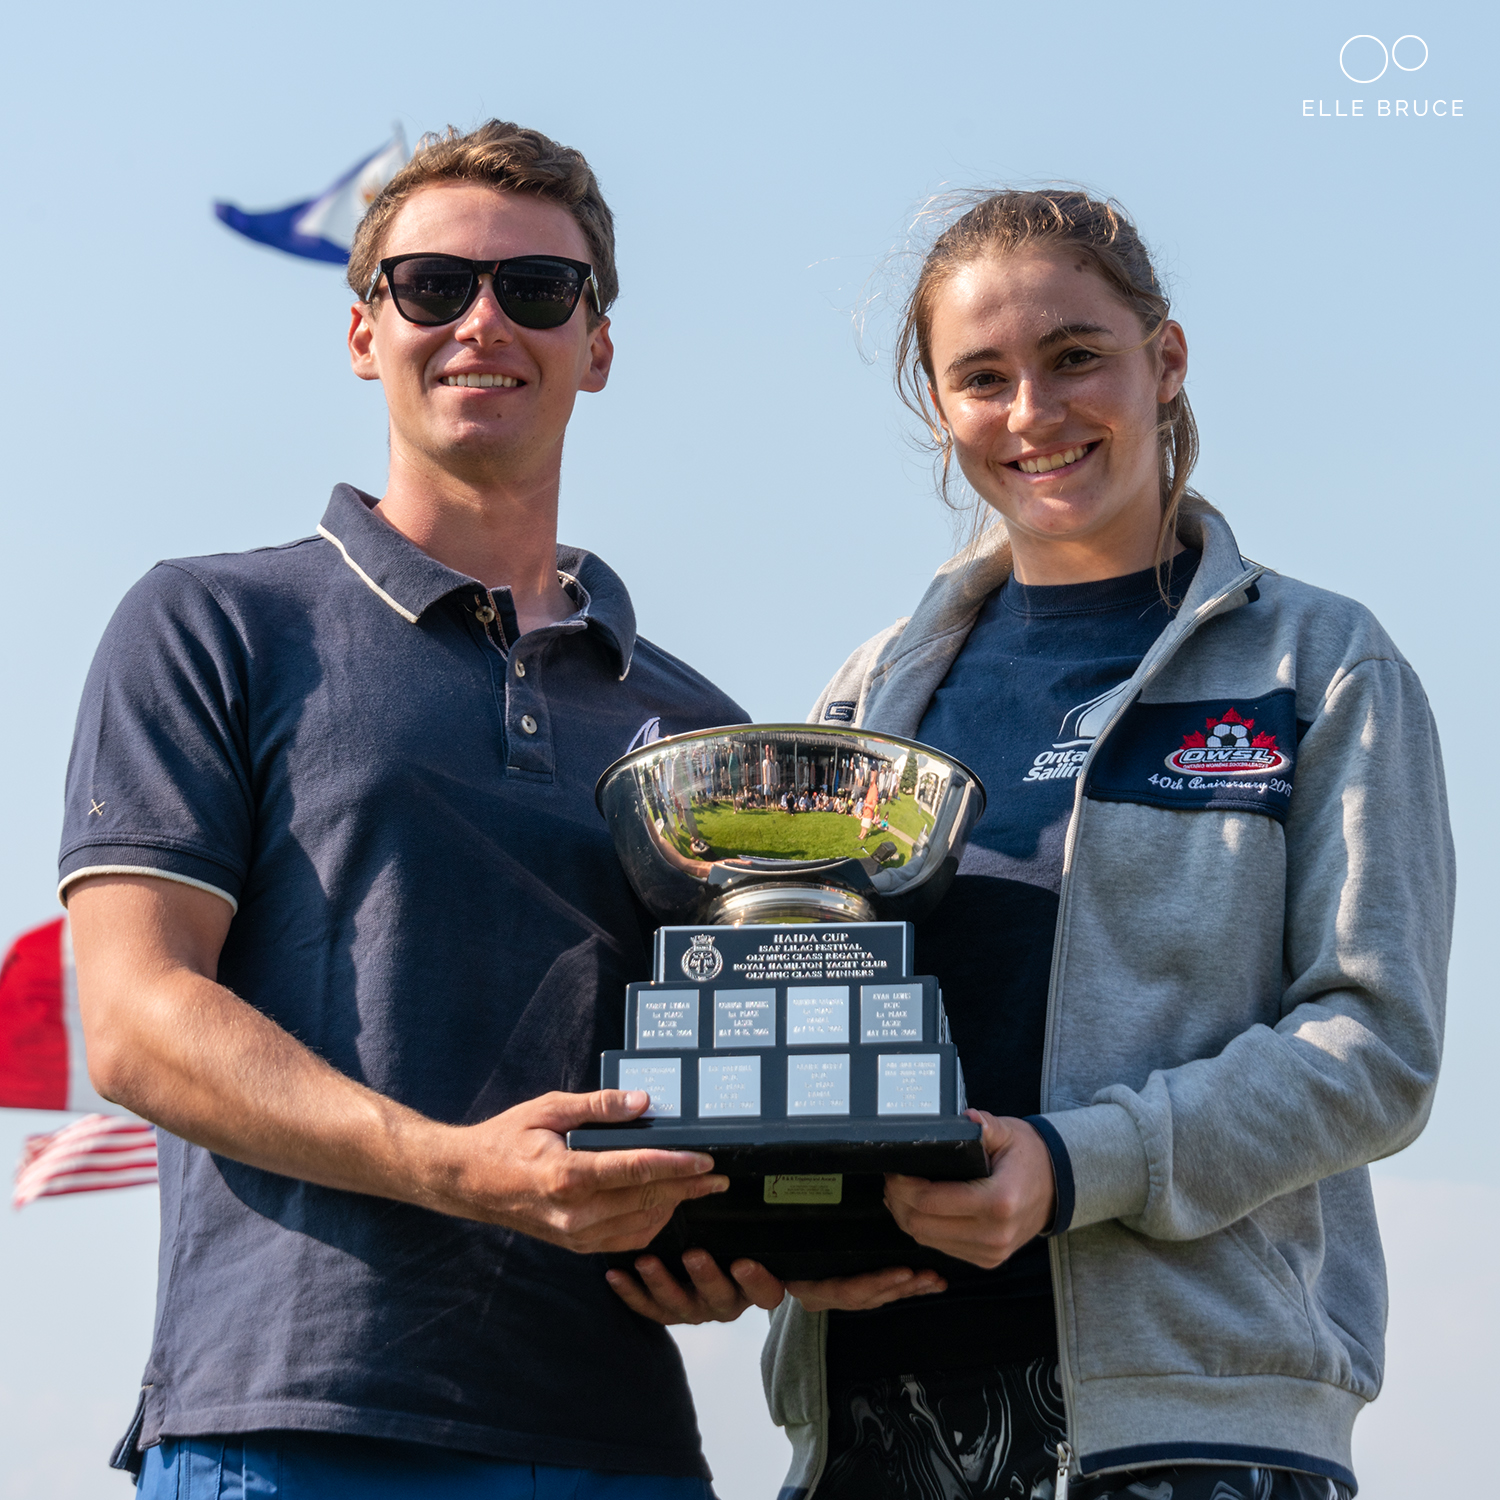 Liam Bruce - 2018 Lilac Regatta at Royal Hamilton Yacht Club winner of the Laser fleet and co-winner of the Haida Cup.